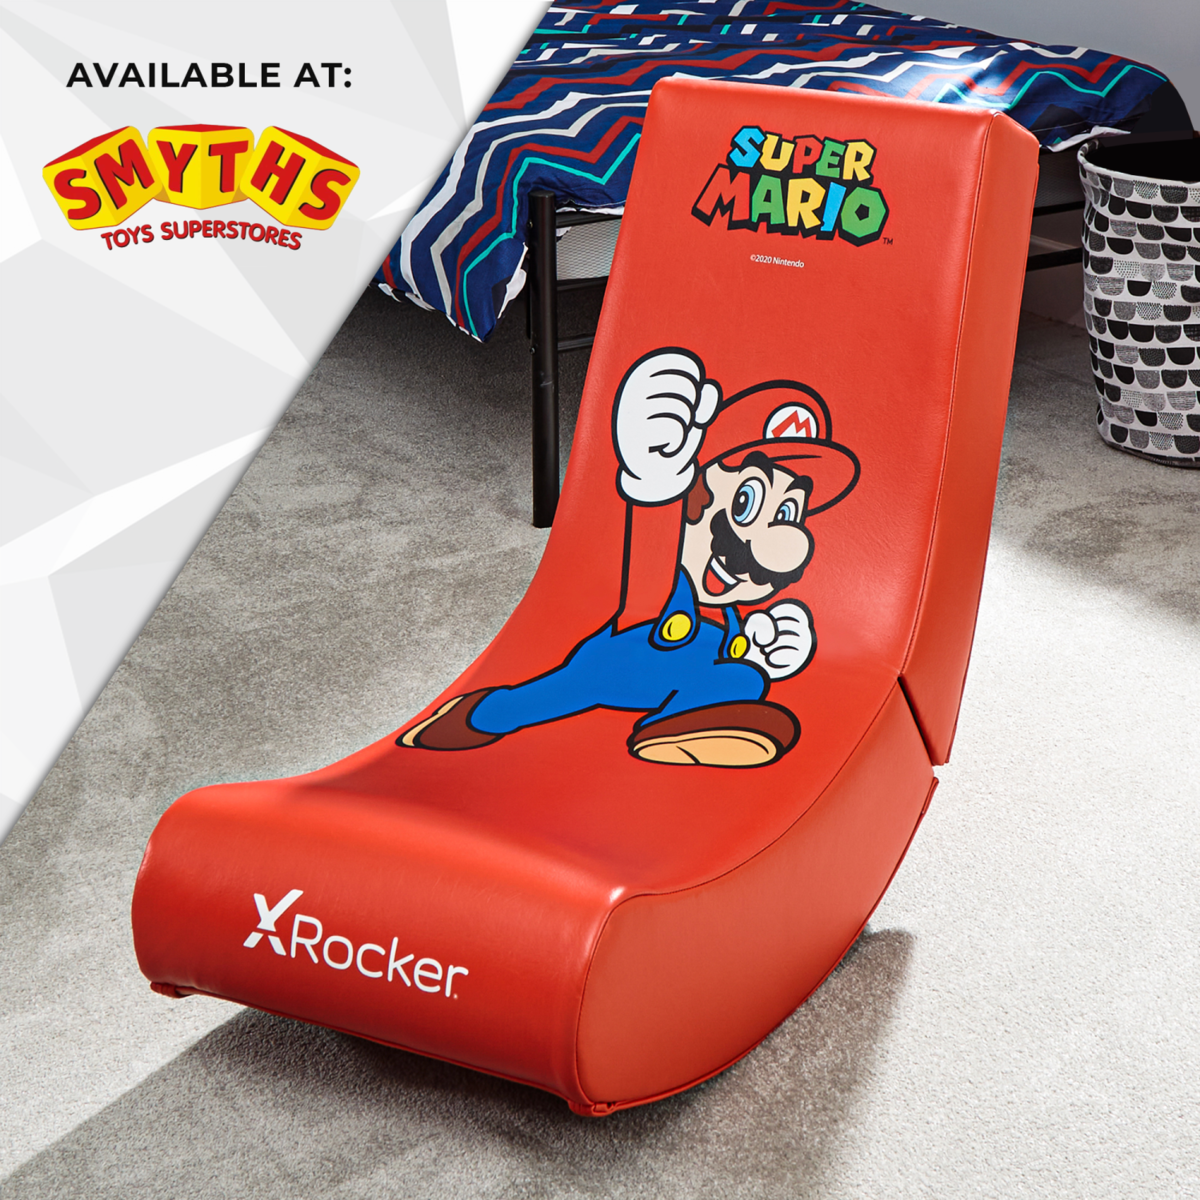 Nintendo Super Mario X Rocker Gaming Chair Floor Rocker- Mario Jump Edition available at Smyths Toys